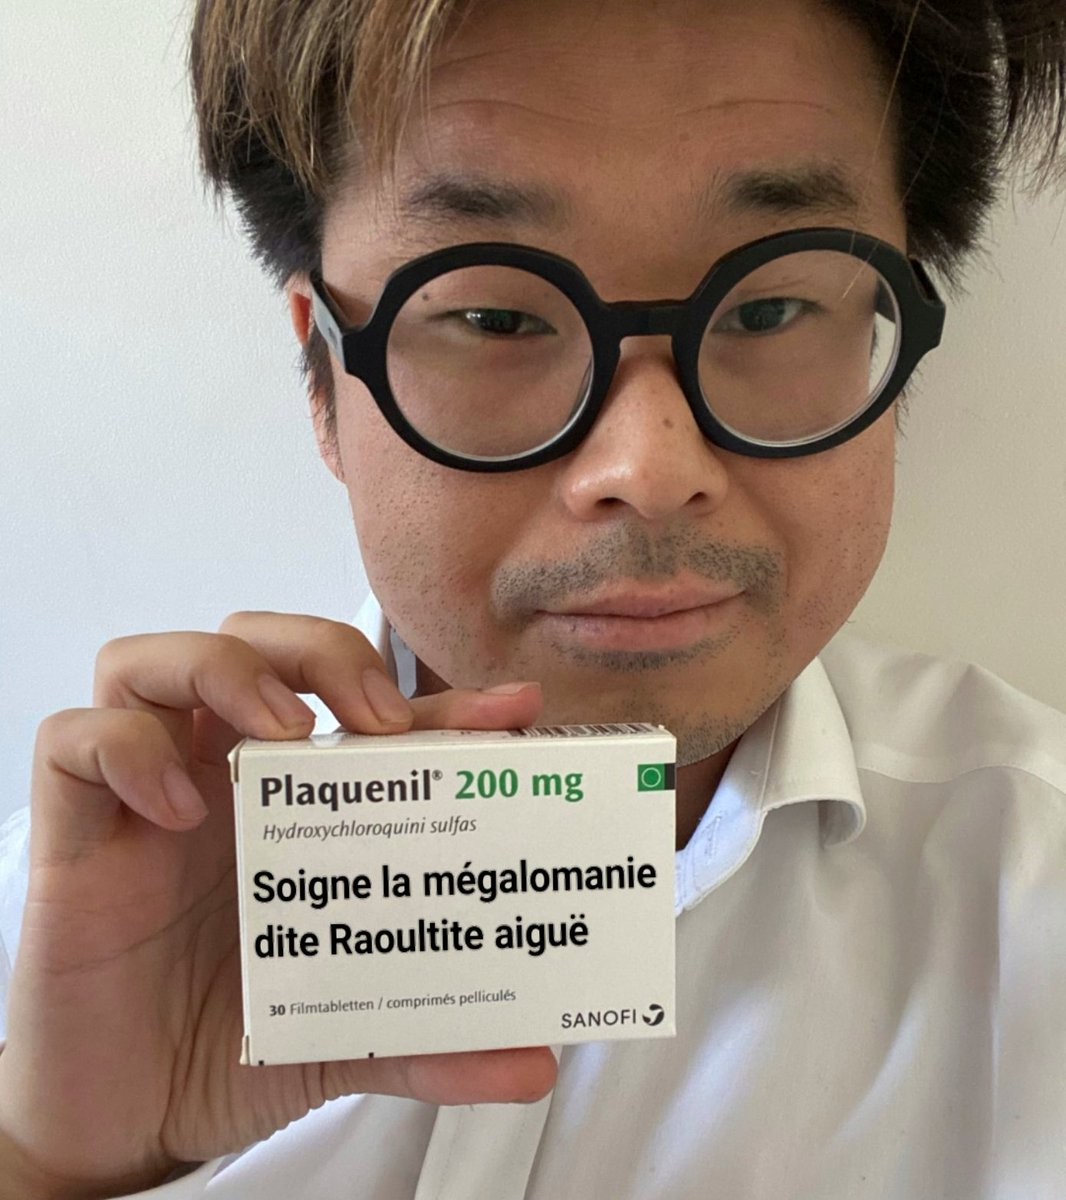 #SonForget #DidierRaoult #COVID__19 #chloroquine #plaquenil Didier #Raoult  https:// twitter.com/sonjoachim/sta tus/1265574820726669313  … <br>http://pic.twitter.com/aG8o3M6Z9L